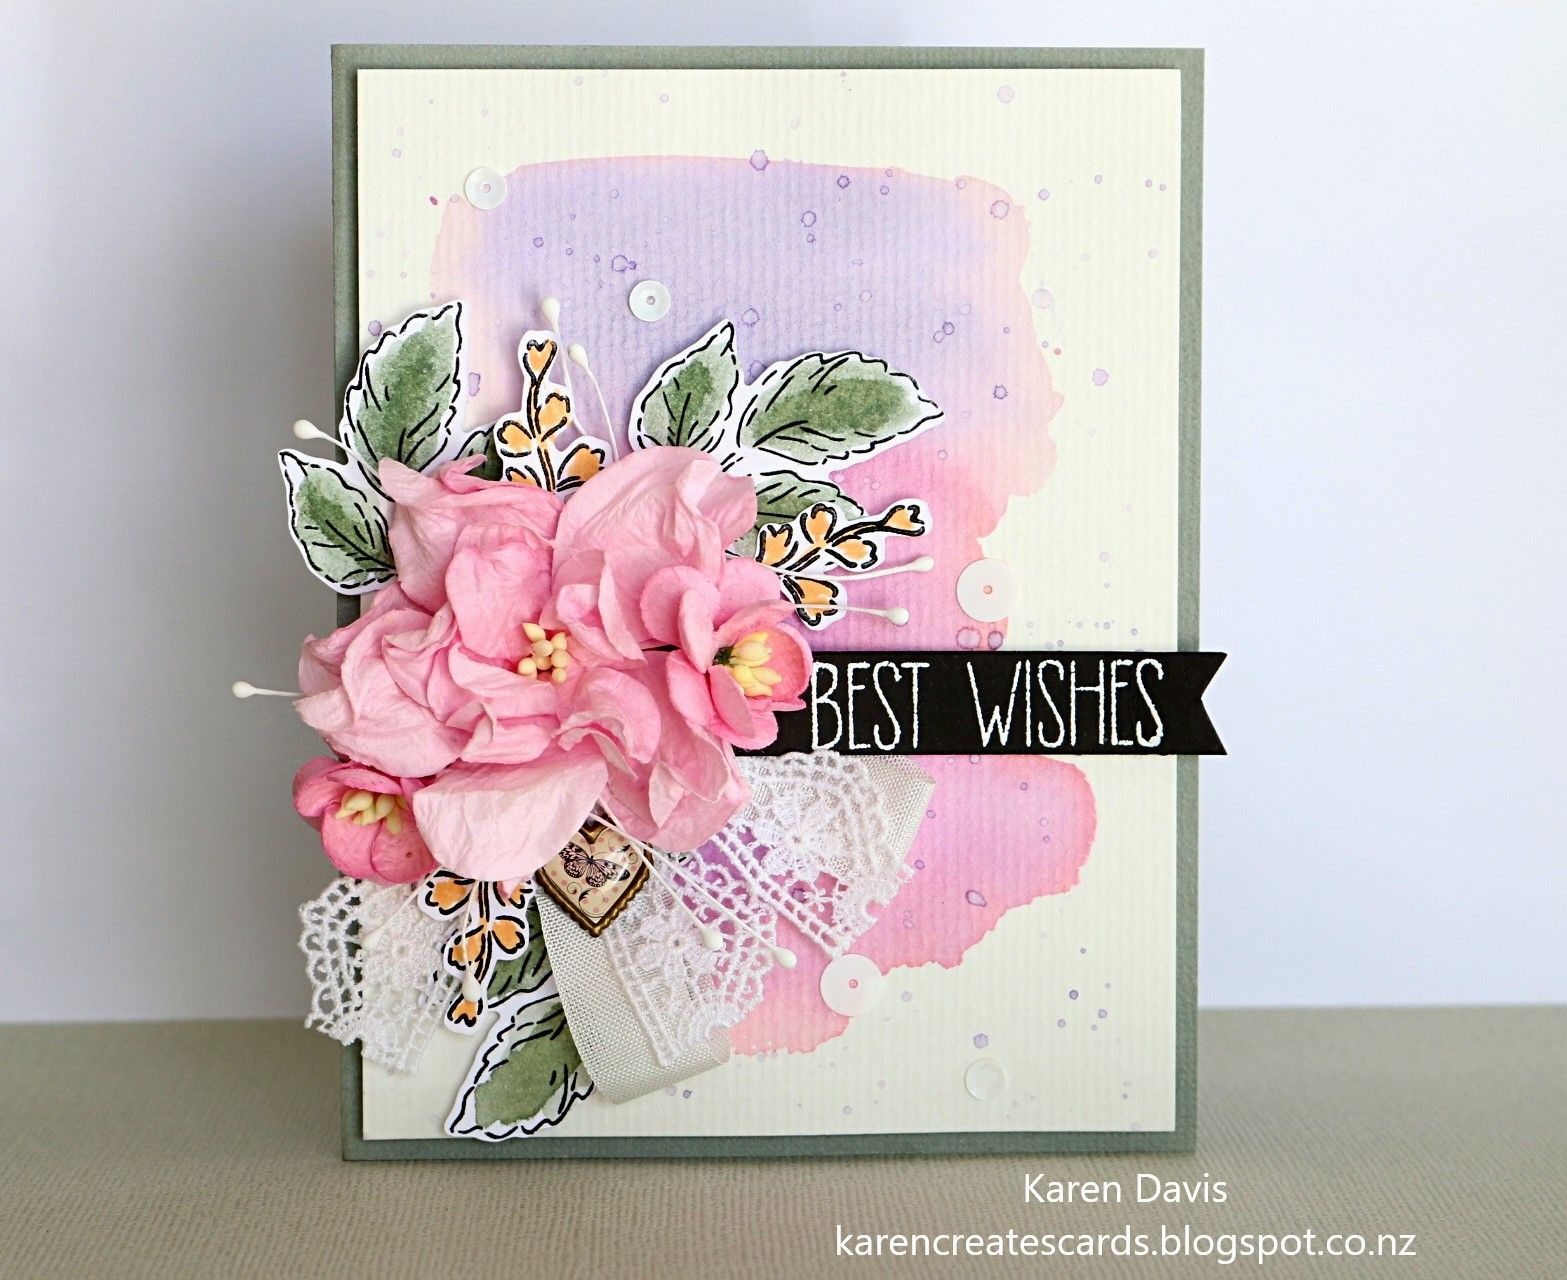 Card Making Tips Ideas Part - 16: About Cardmaking, With Tips, Ideas, My Card Making Journey Into Challenges  Etc